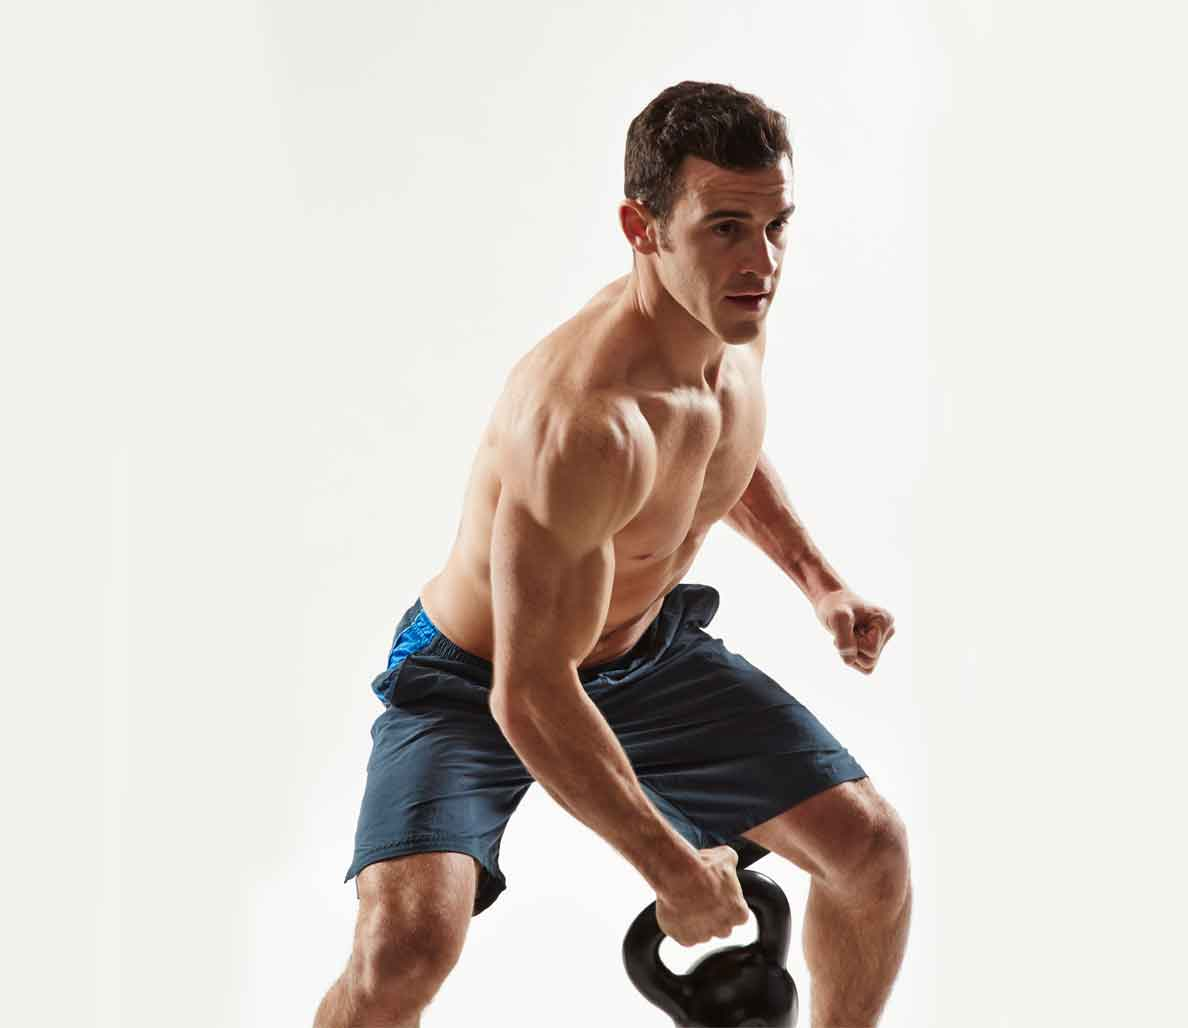 The Kettlebell Snatch - 1 of the Best Exercises For Belly Fat Going Today!